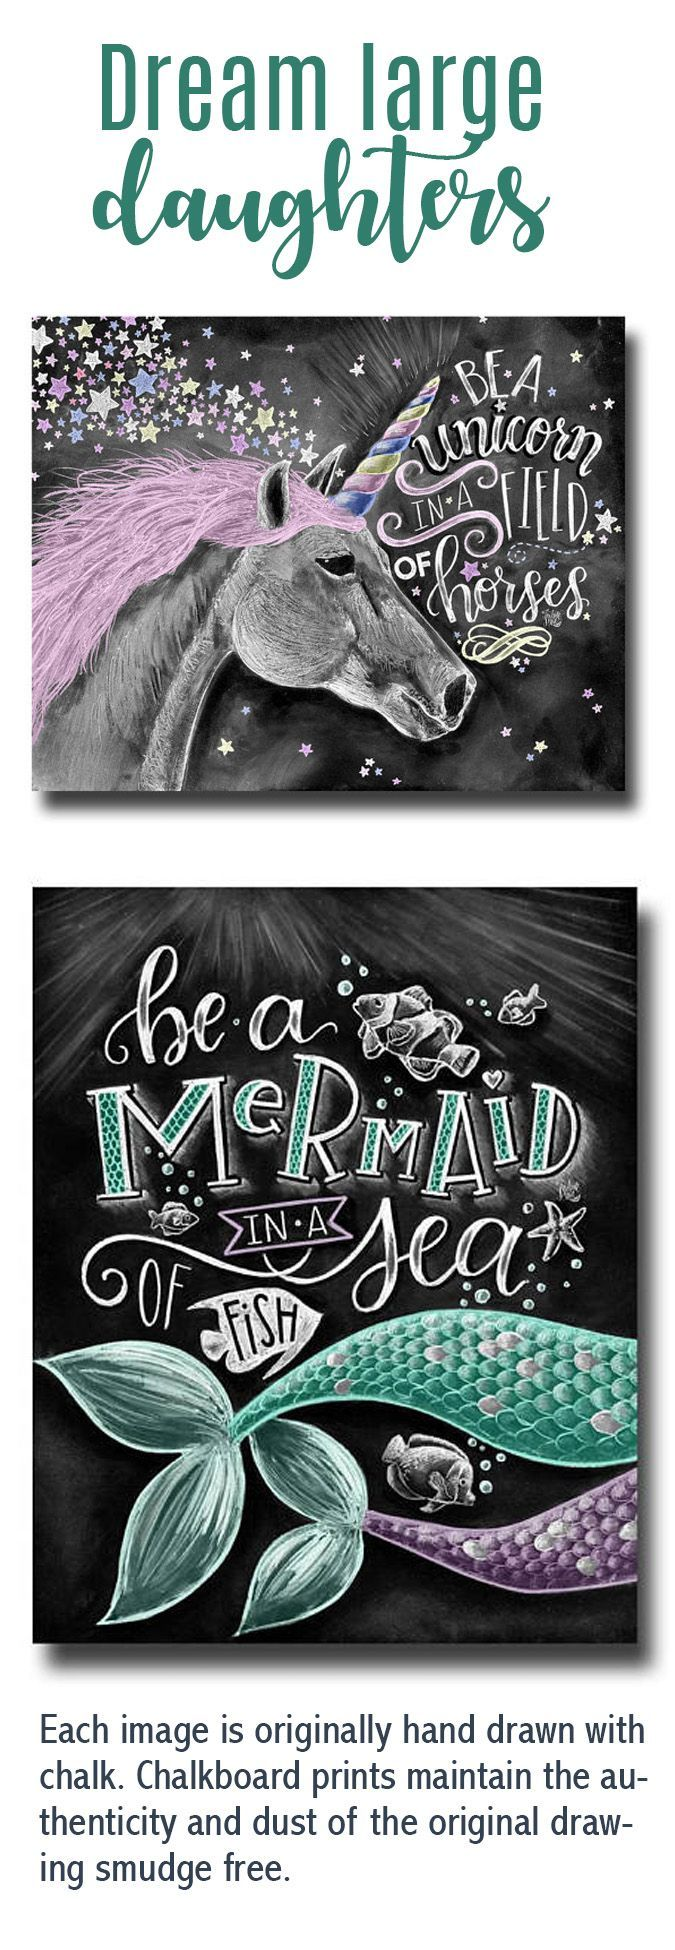 Adorable, encouraging chalkboard art, perfect for my daughter or granddaughter's rooms. These are printed All prints are printed on Deep Matte Fujicolor Crystal Archive Professional Paper. Gorgeous. #chalkboard #chalkart #unicorn #mermaid #wallart #girlsroom #nursery #ad